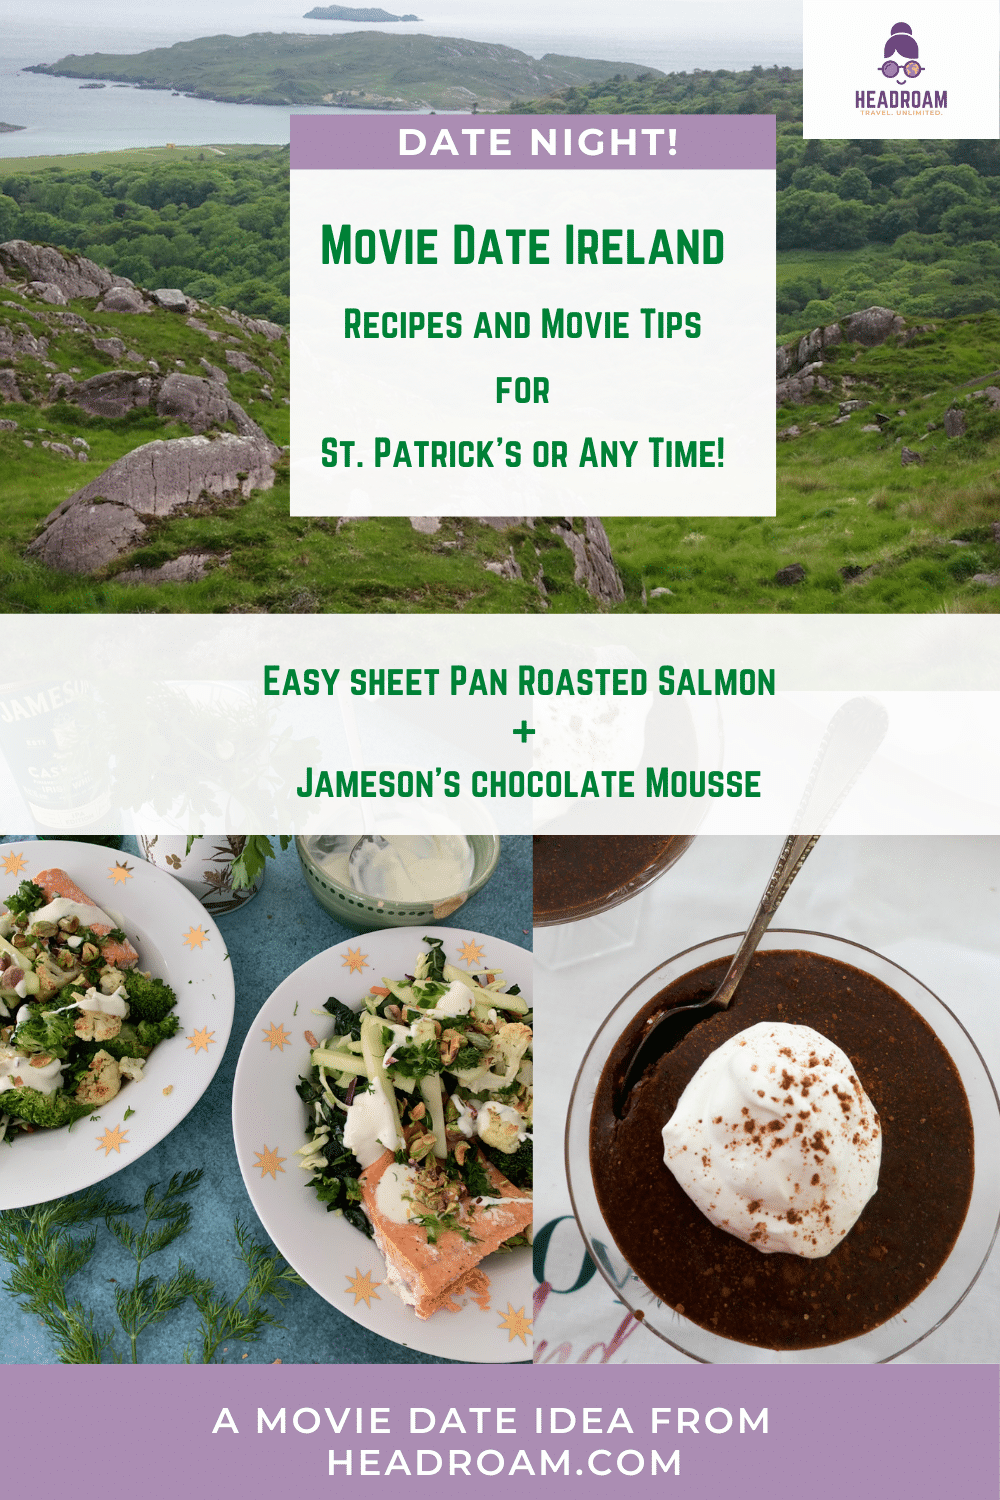 Movie Date Ireland: 2 Delicious Courses and Many Movies to Celebrate March 17th